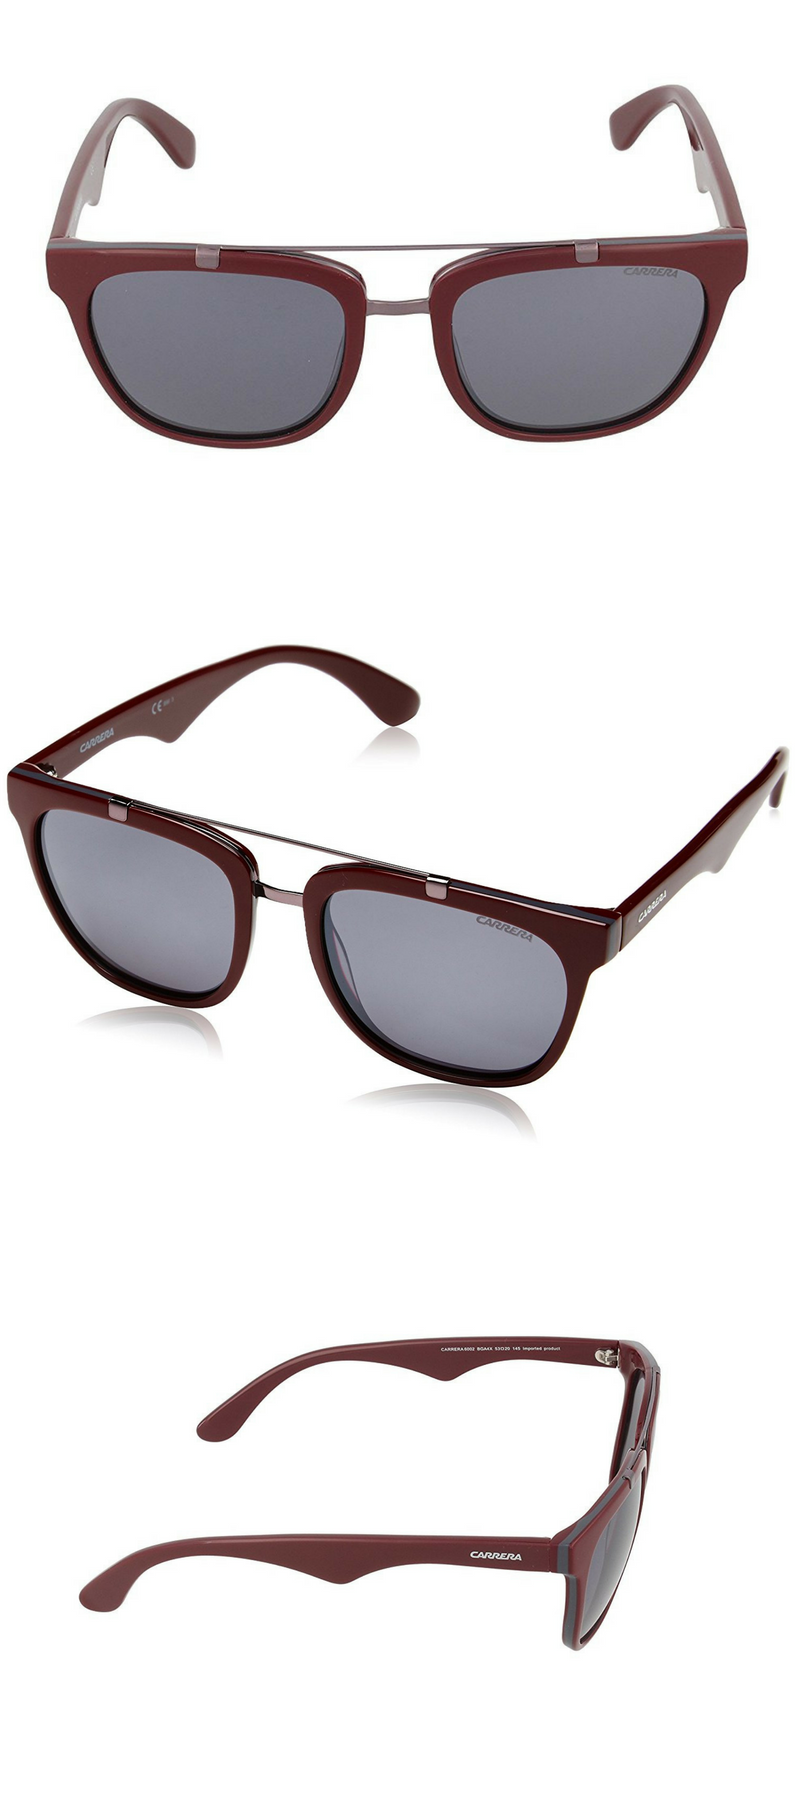 547db97ac3c47 Carrera 6002 mens sunglasses